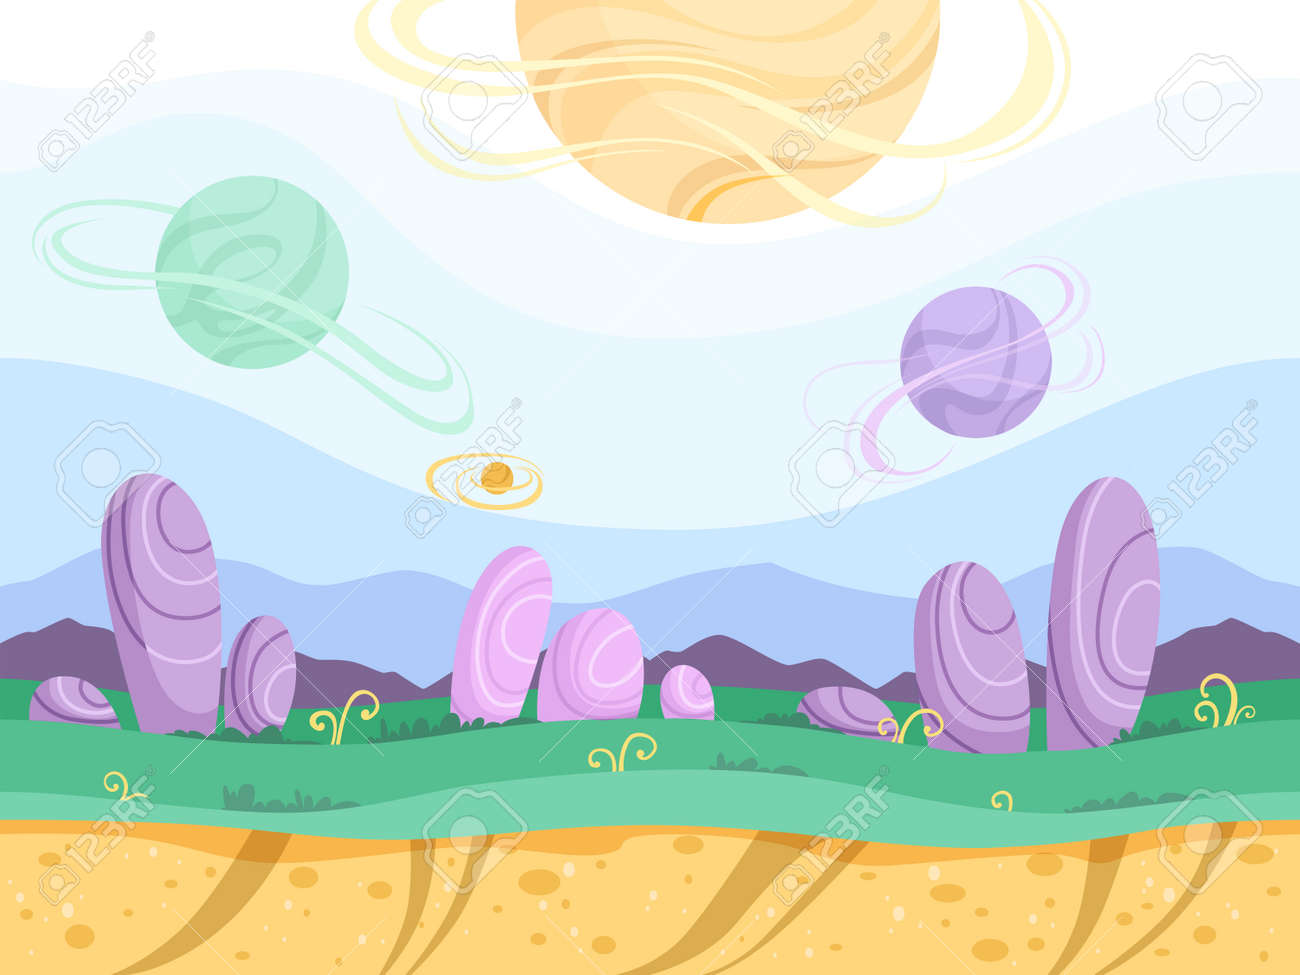 Alien seamless background. Moon surface strange futuristic fantasy planet ground explorer mountain 2d games vector cartoon picture. Illustration of landscape game surface level, gui for videogame - 168210249